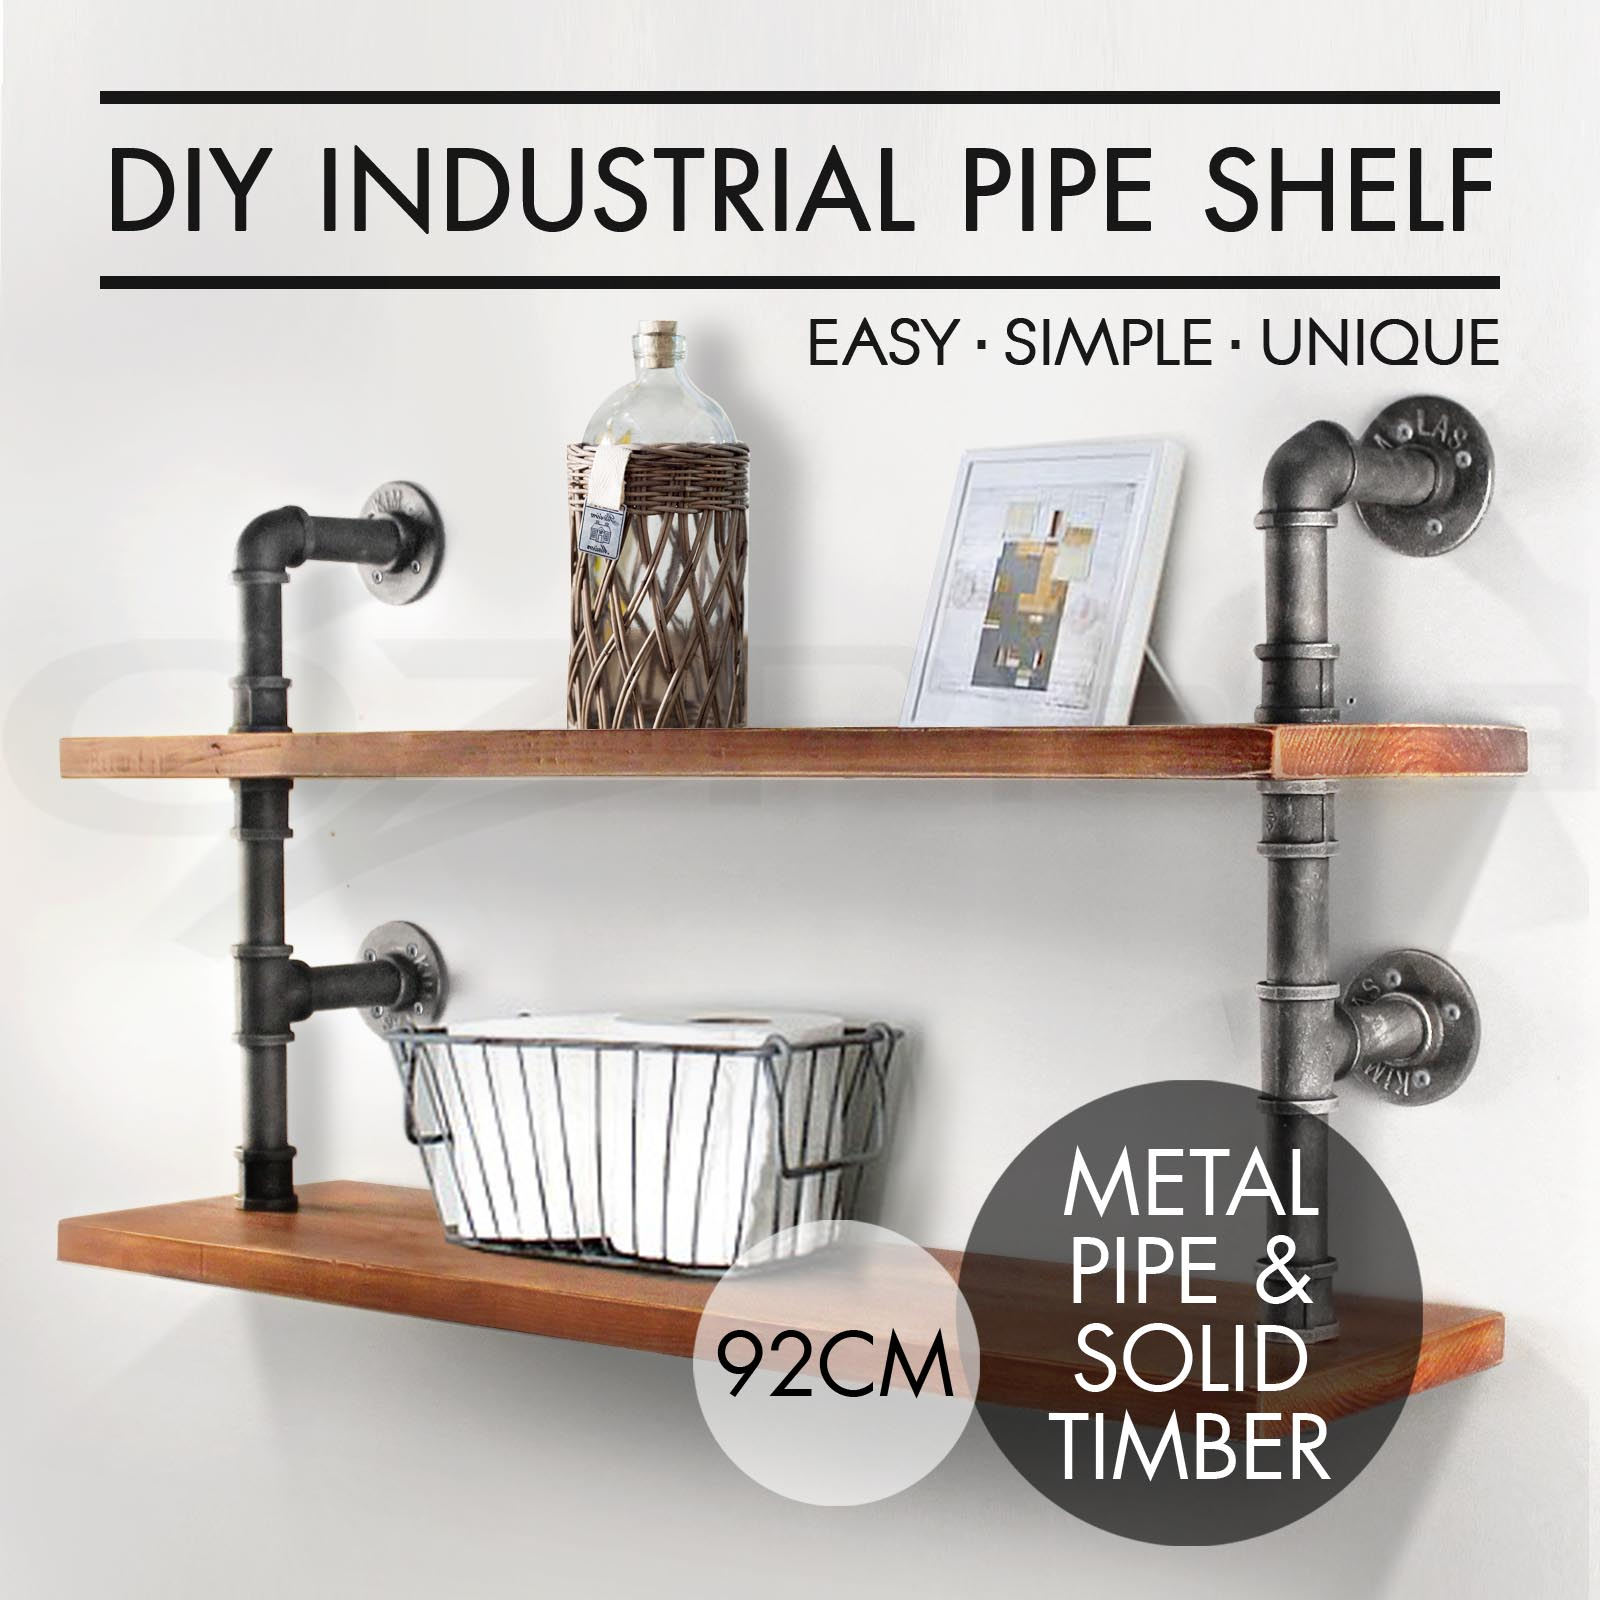 Shabby Chic Home Decor Wholesale Rustic Industrial Diy Pipe Shelf Storage Vintage Wooden